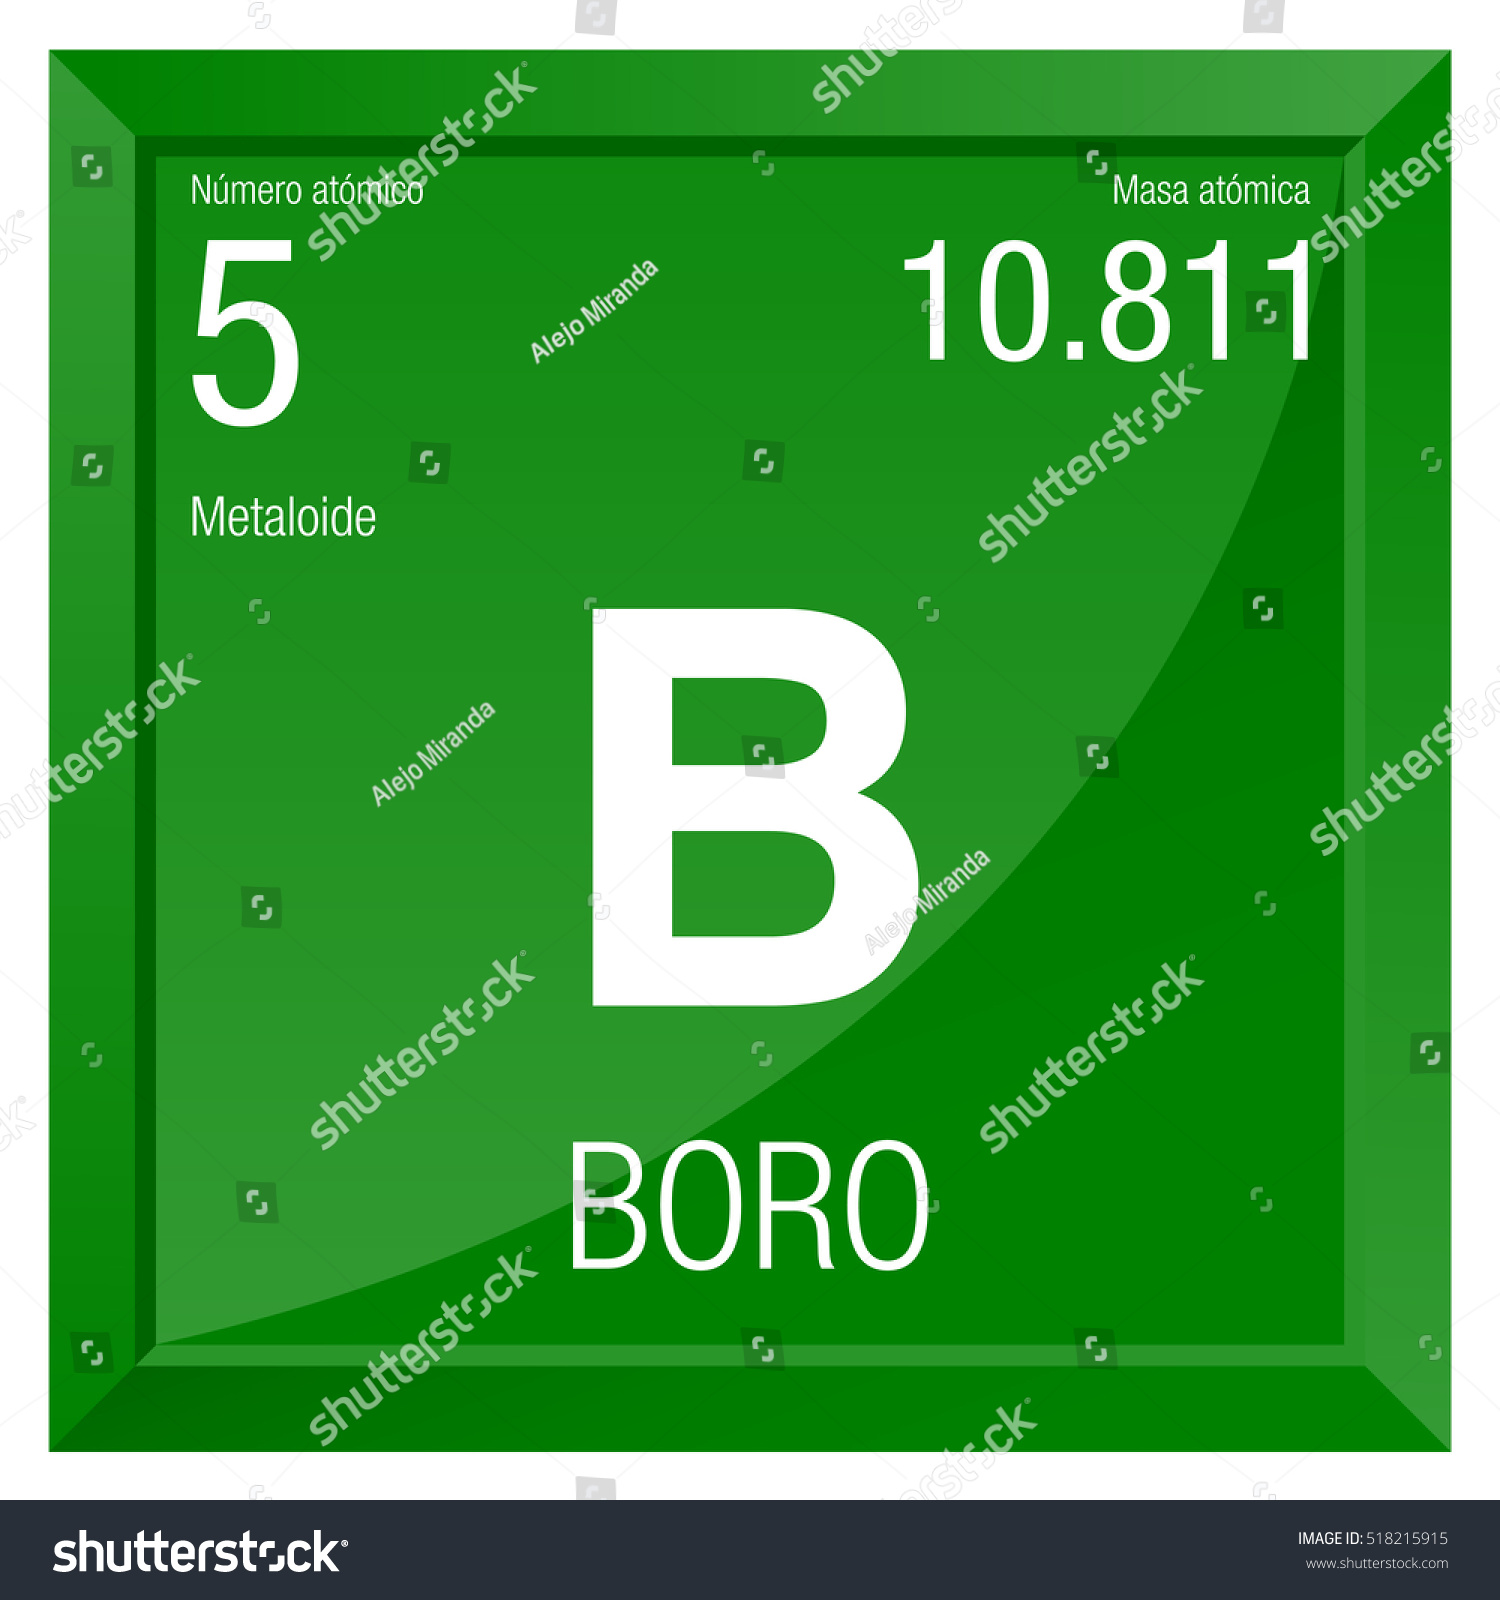 Boro symbol boron spanish language element stock vector 518215915 boro symbol boron in spanish language element number 5 of the periodic table of buycottarizona